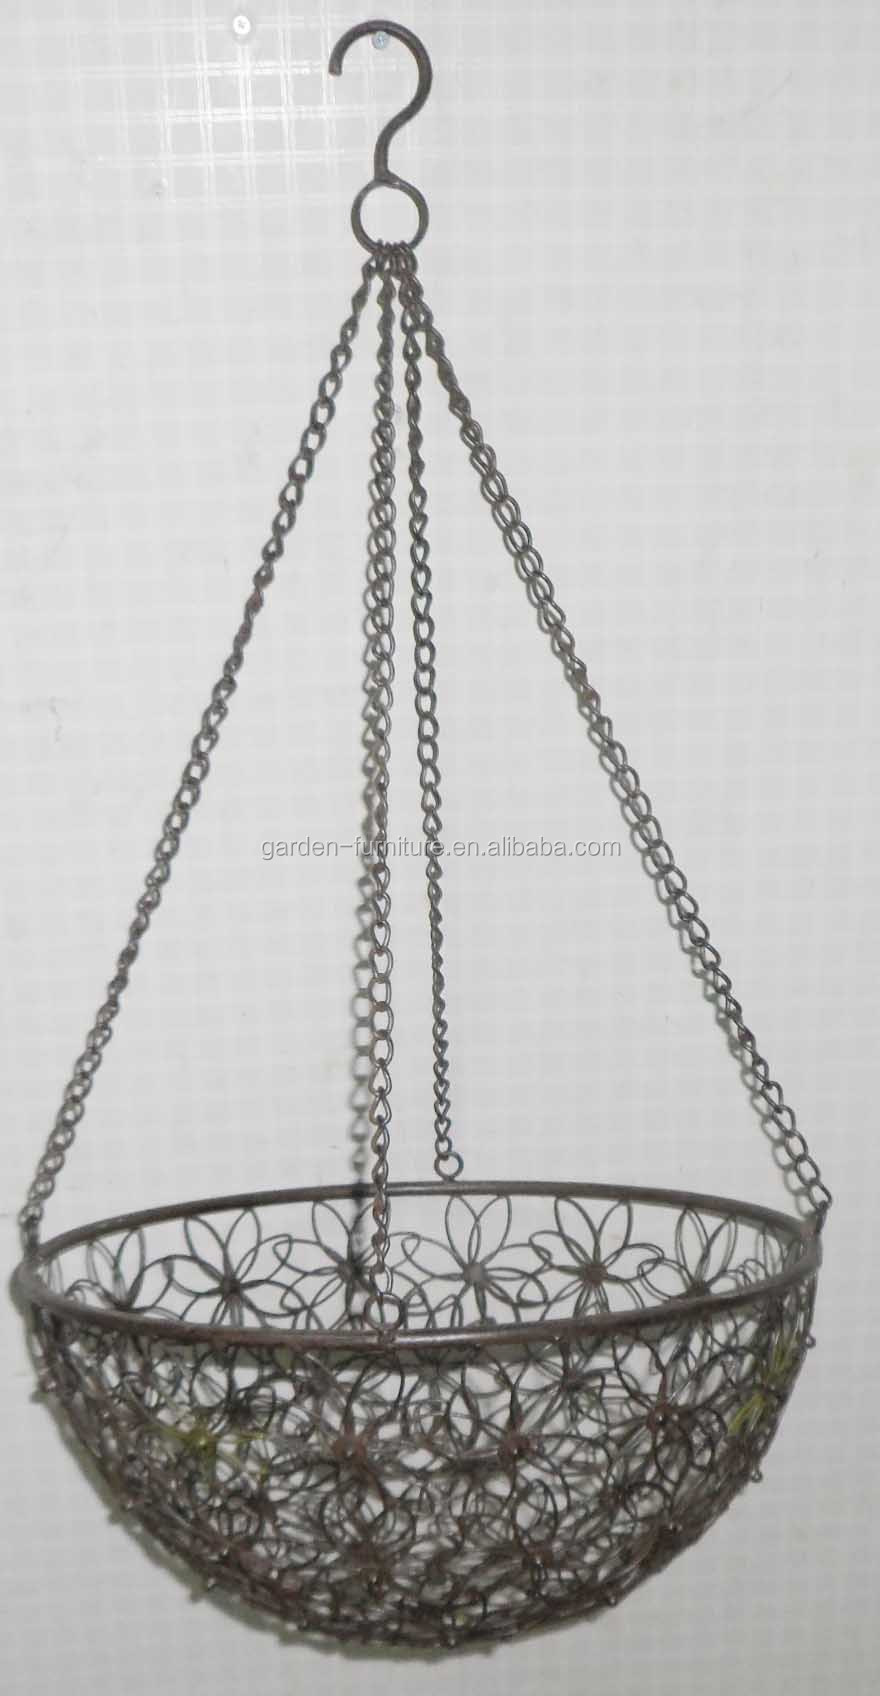 Metal Flower Hanging Baskets : Handicraft decorative metal planter fruit bowl wrought